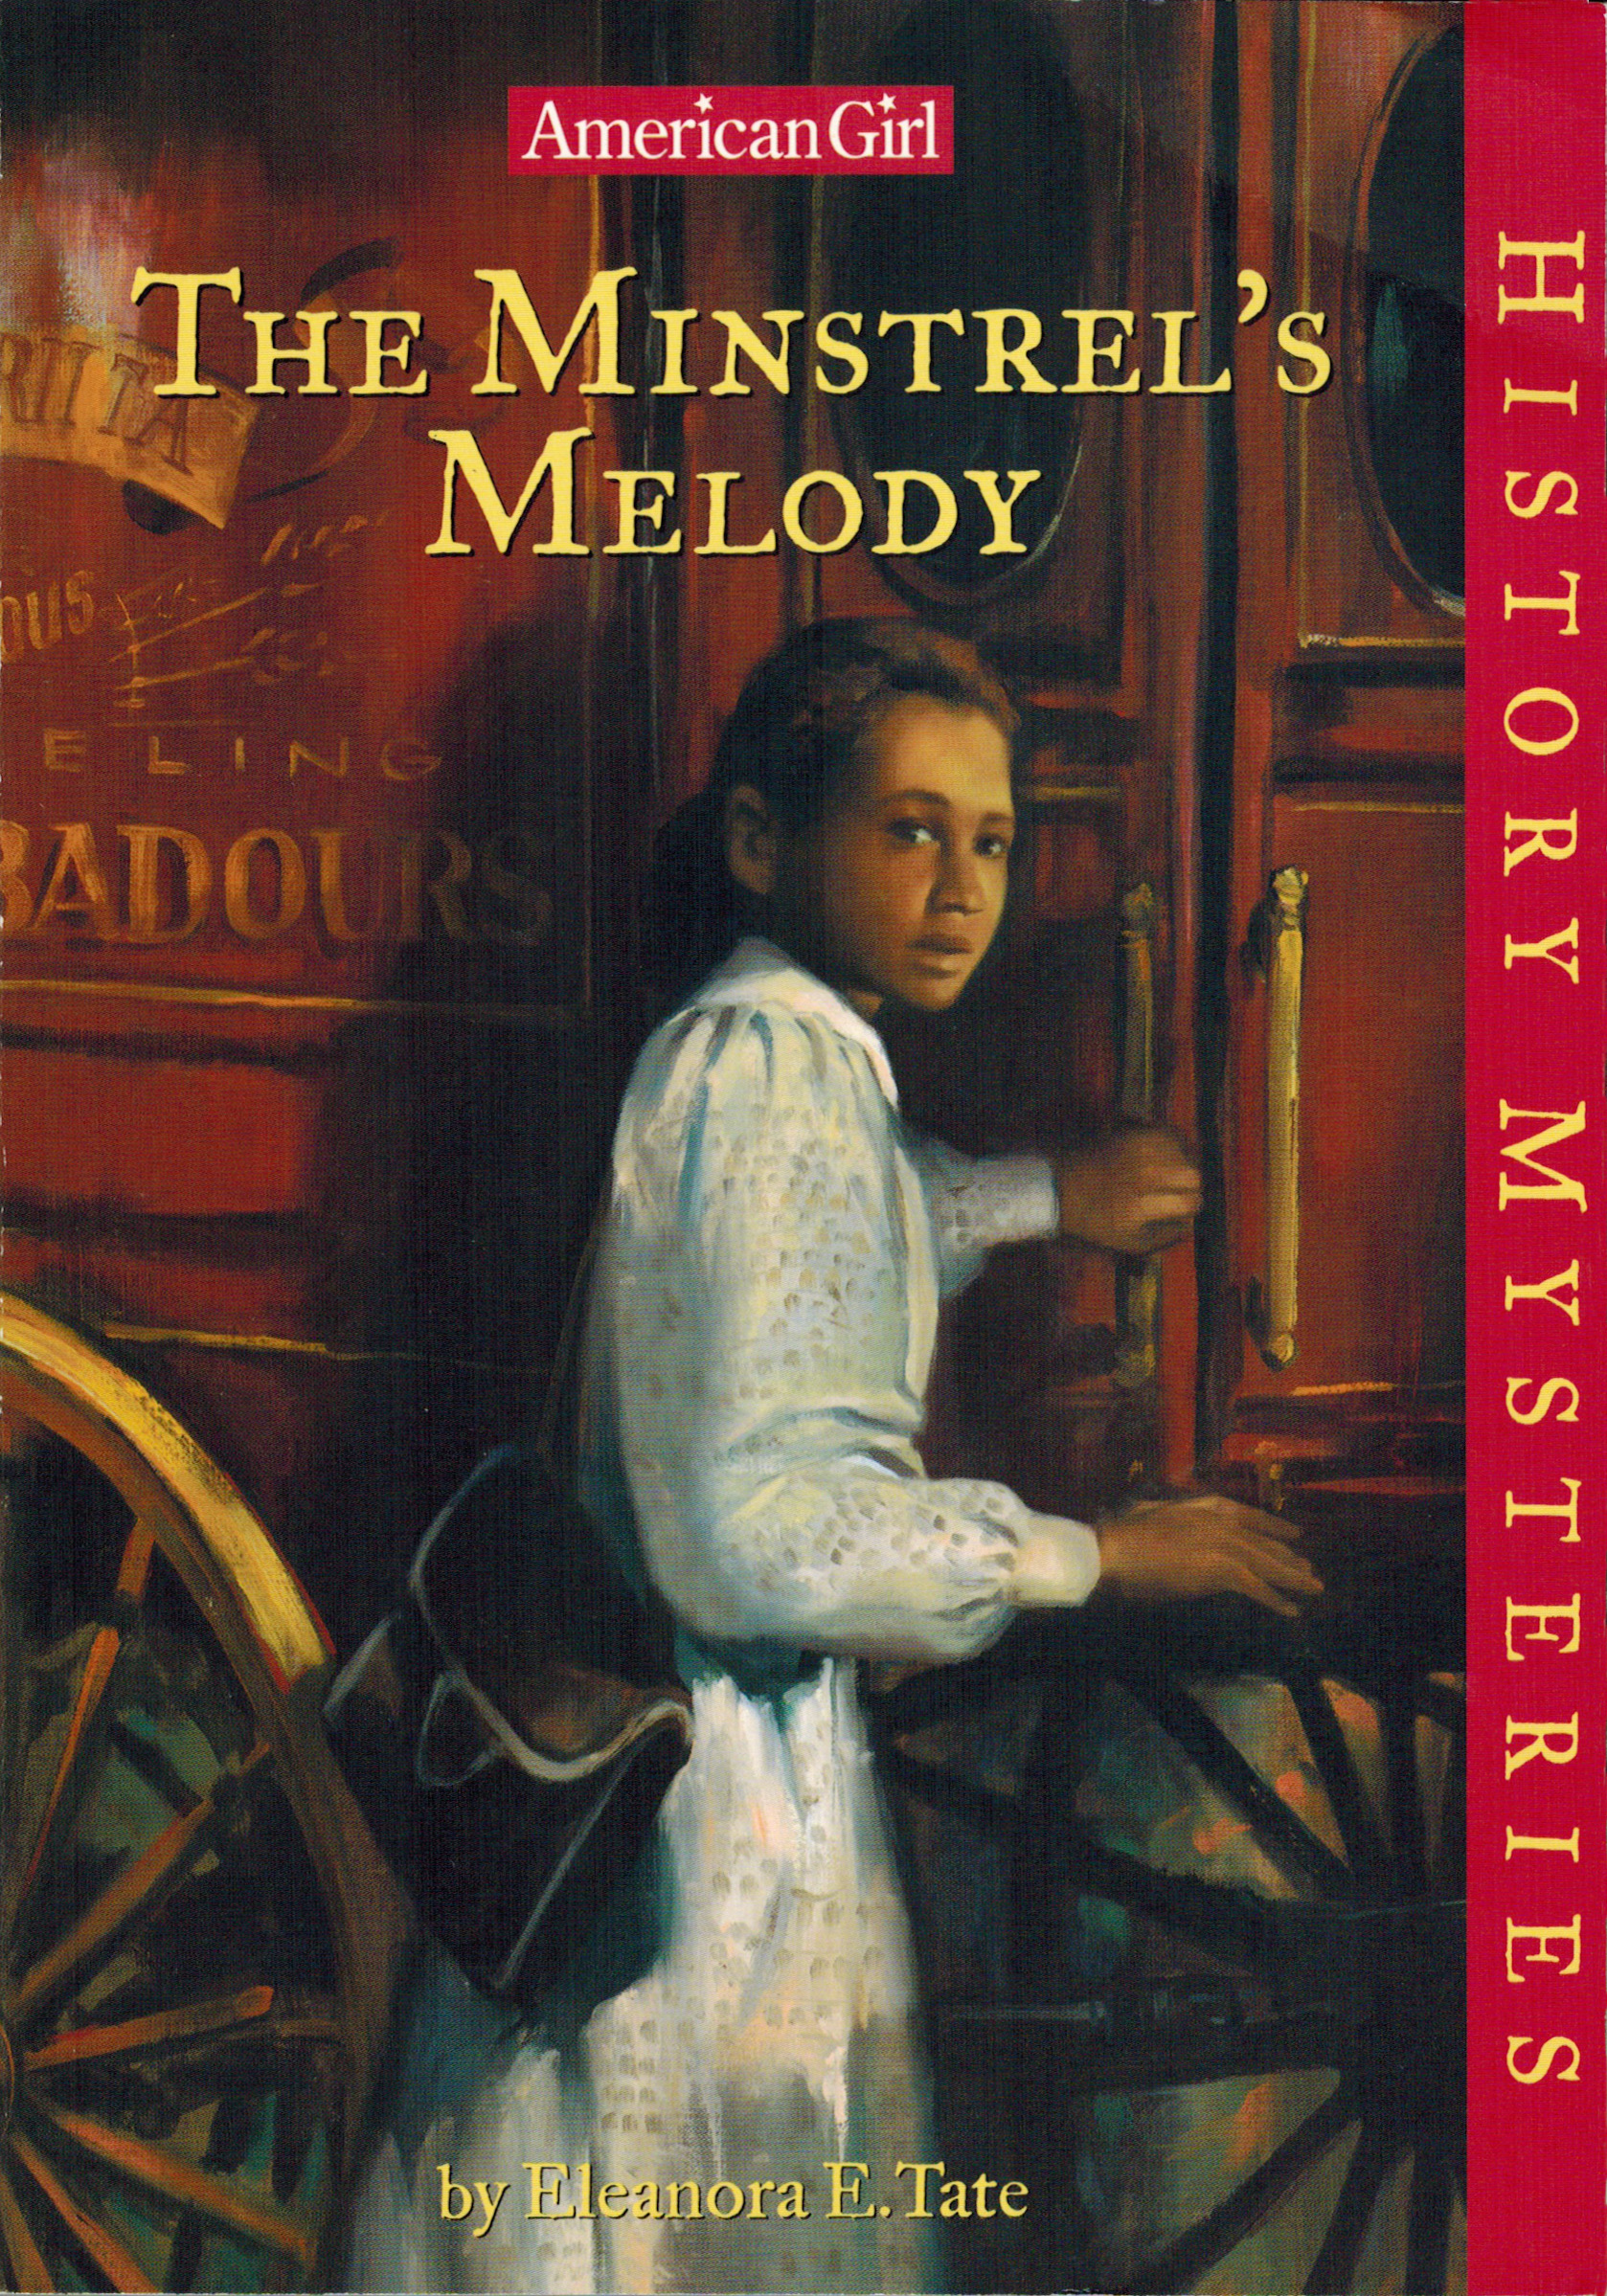 The Minstrel's Melody